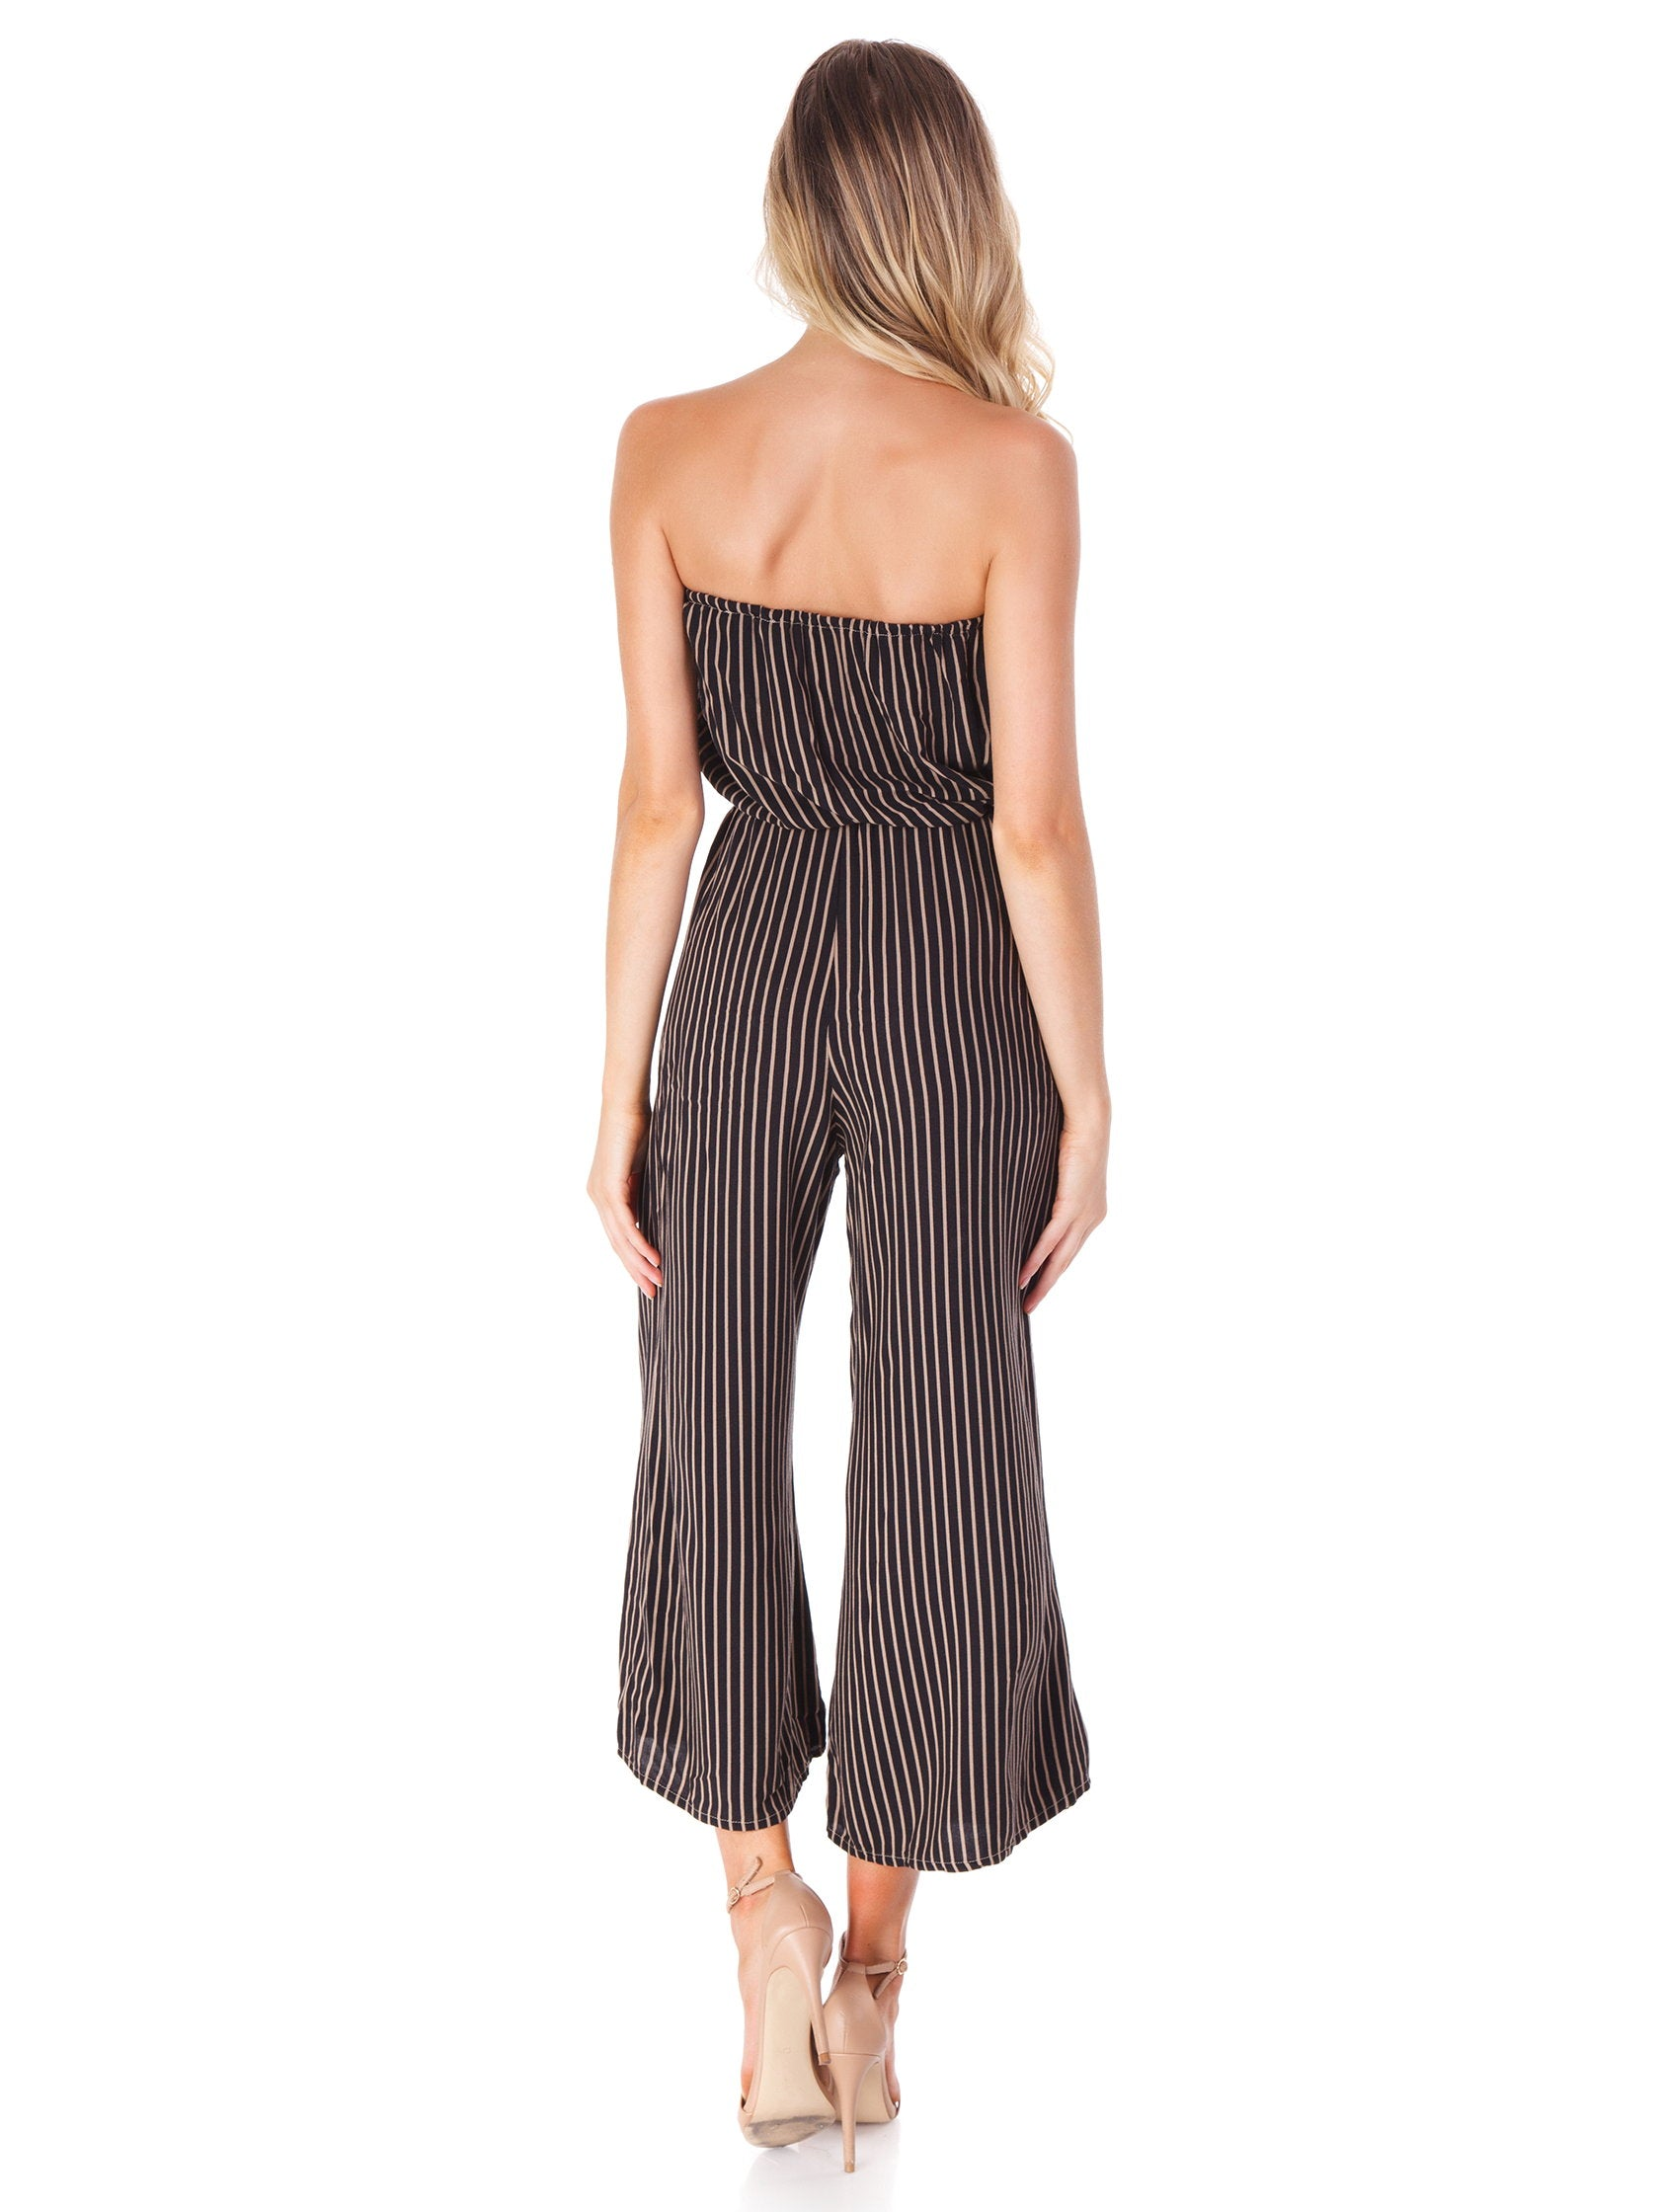 Women wearing a jumpsuit rental from Blue Life called Stripe Bell Jumper